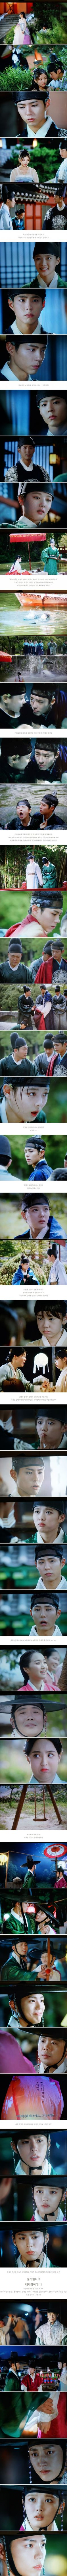 Added episode 5 captures for the Korean drama 'Moonlight Drawn by Clouds'.